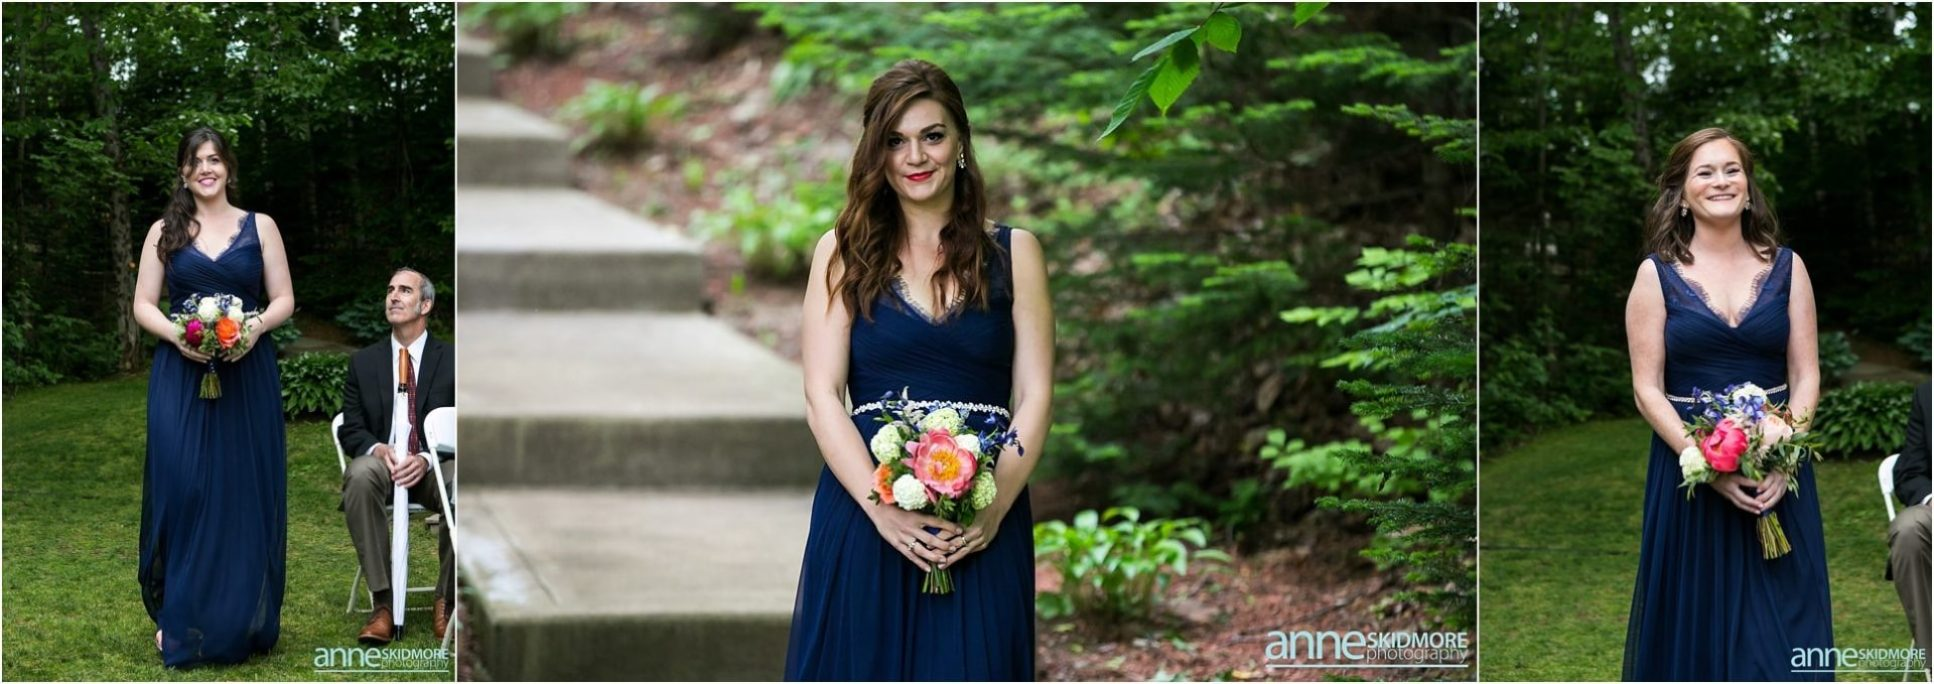 Eagle_Mountain_House_Wedding_0038